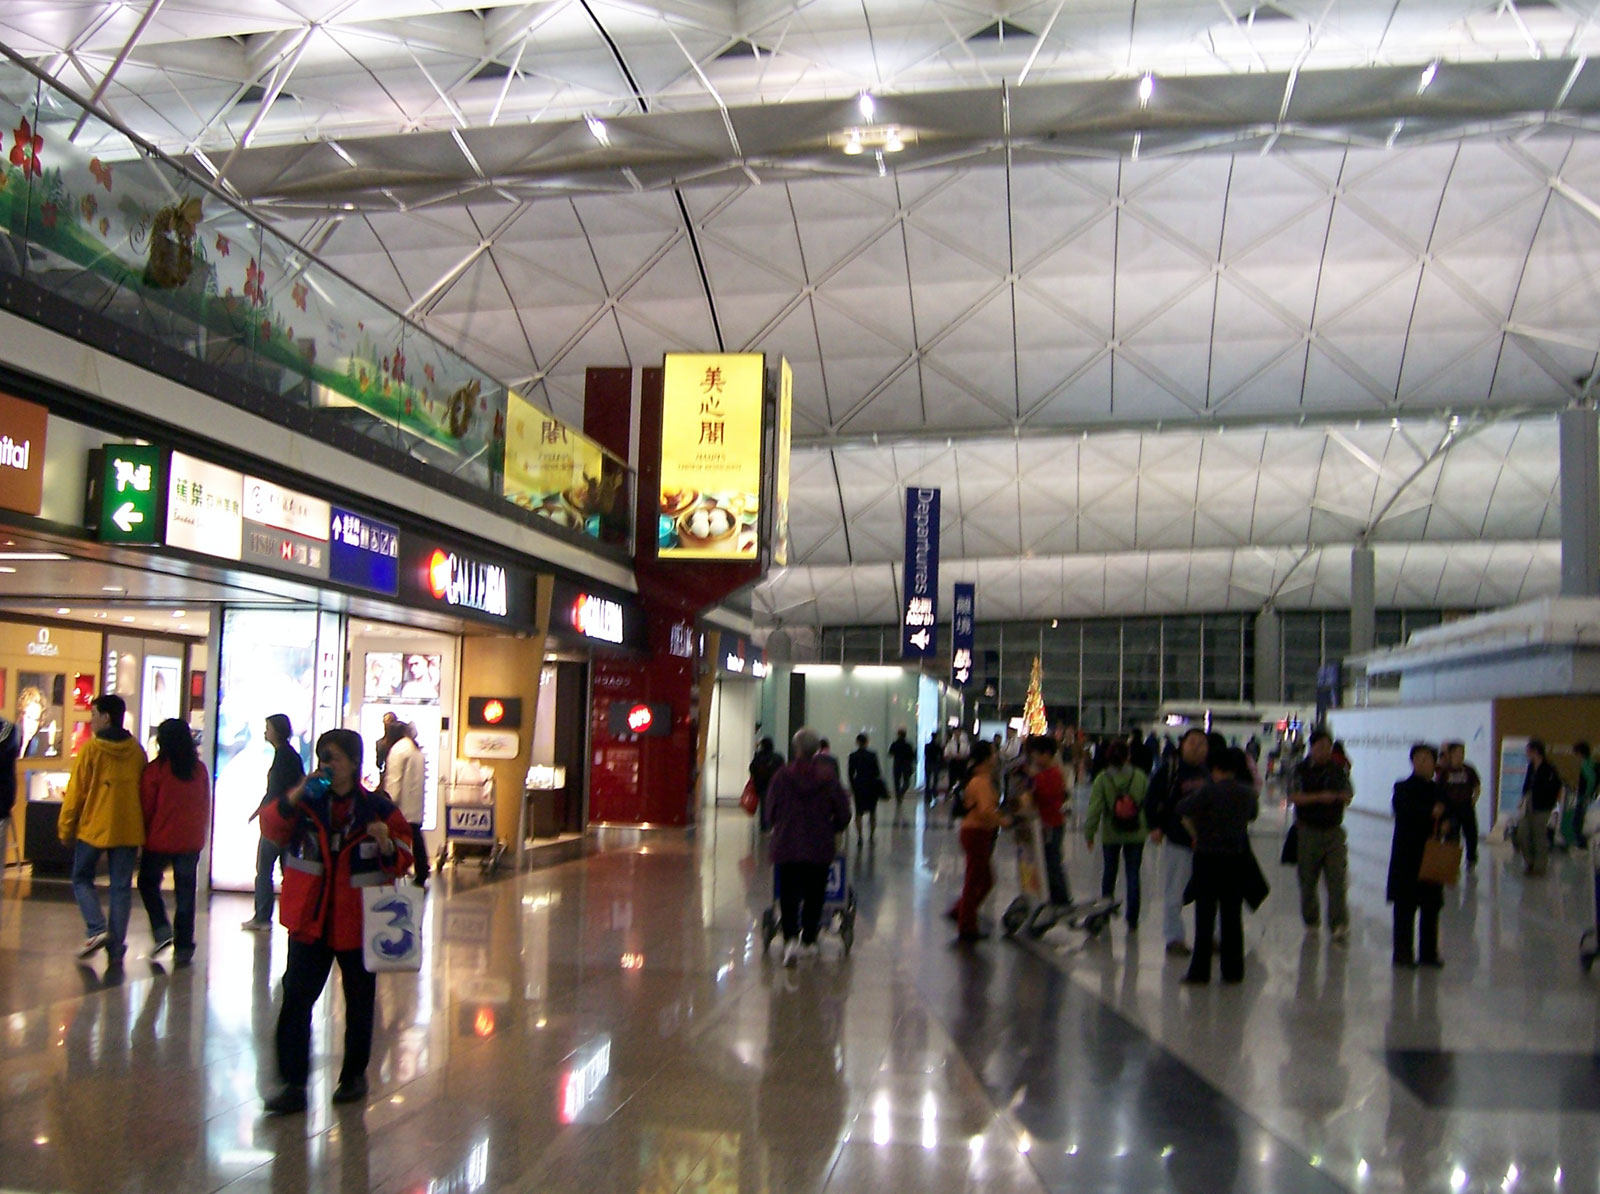 File:HK International Airport inside 4.jpg - Wikimedia Commons